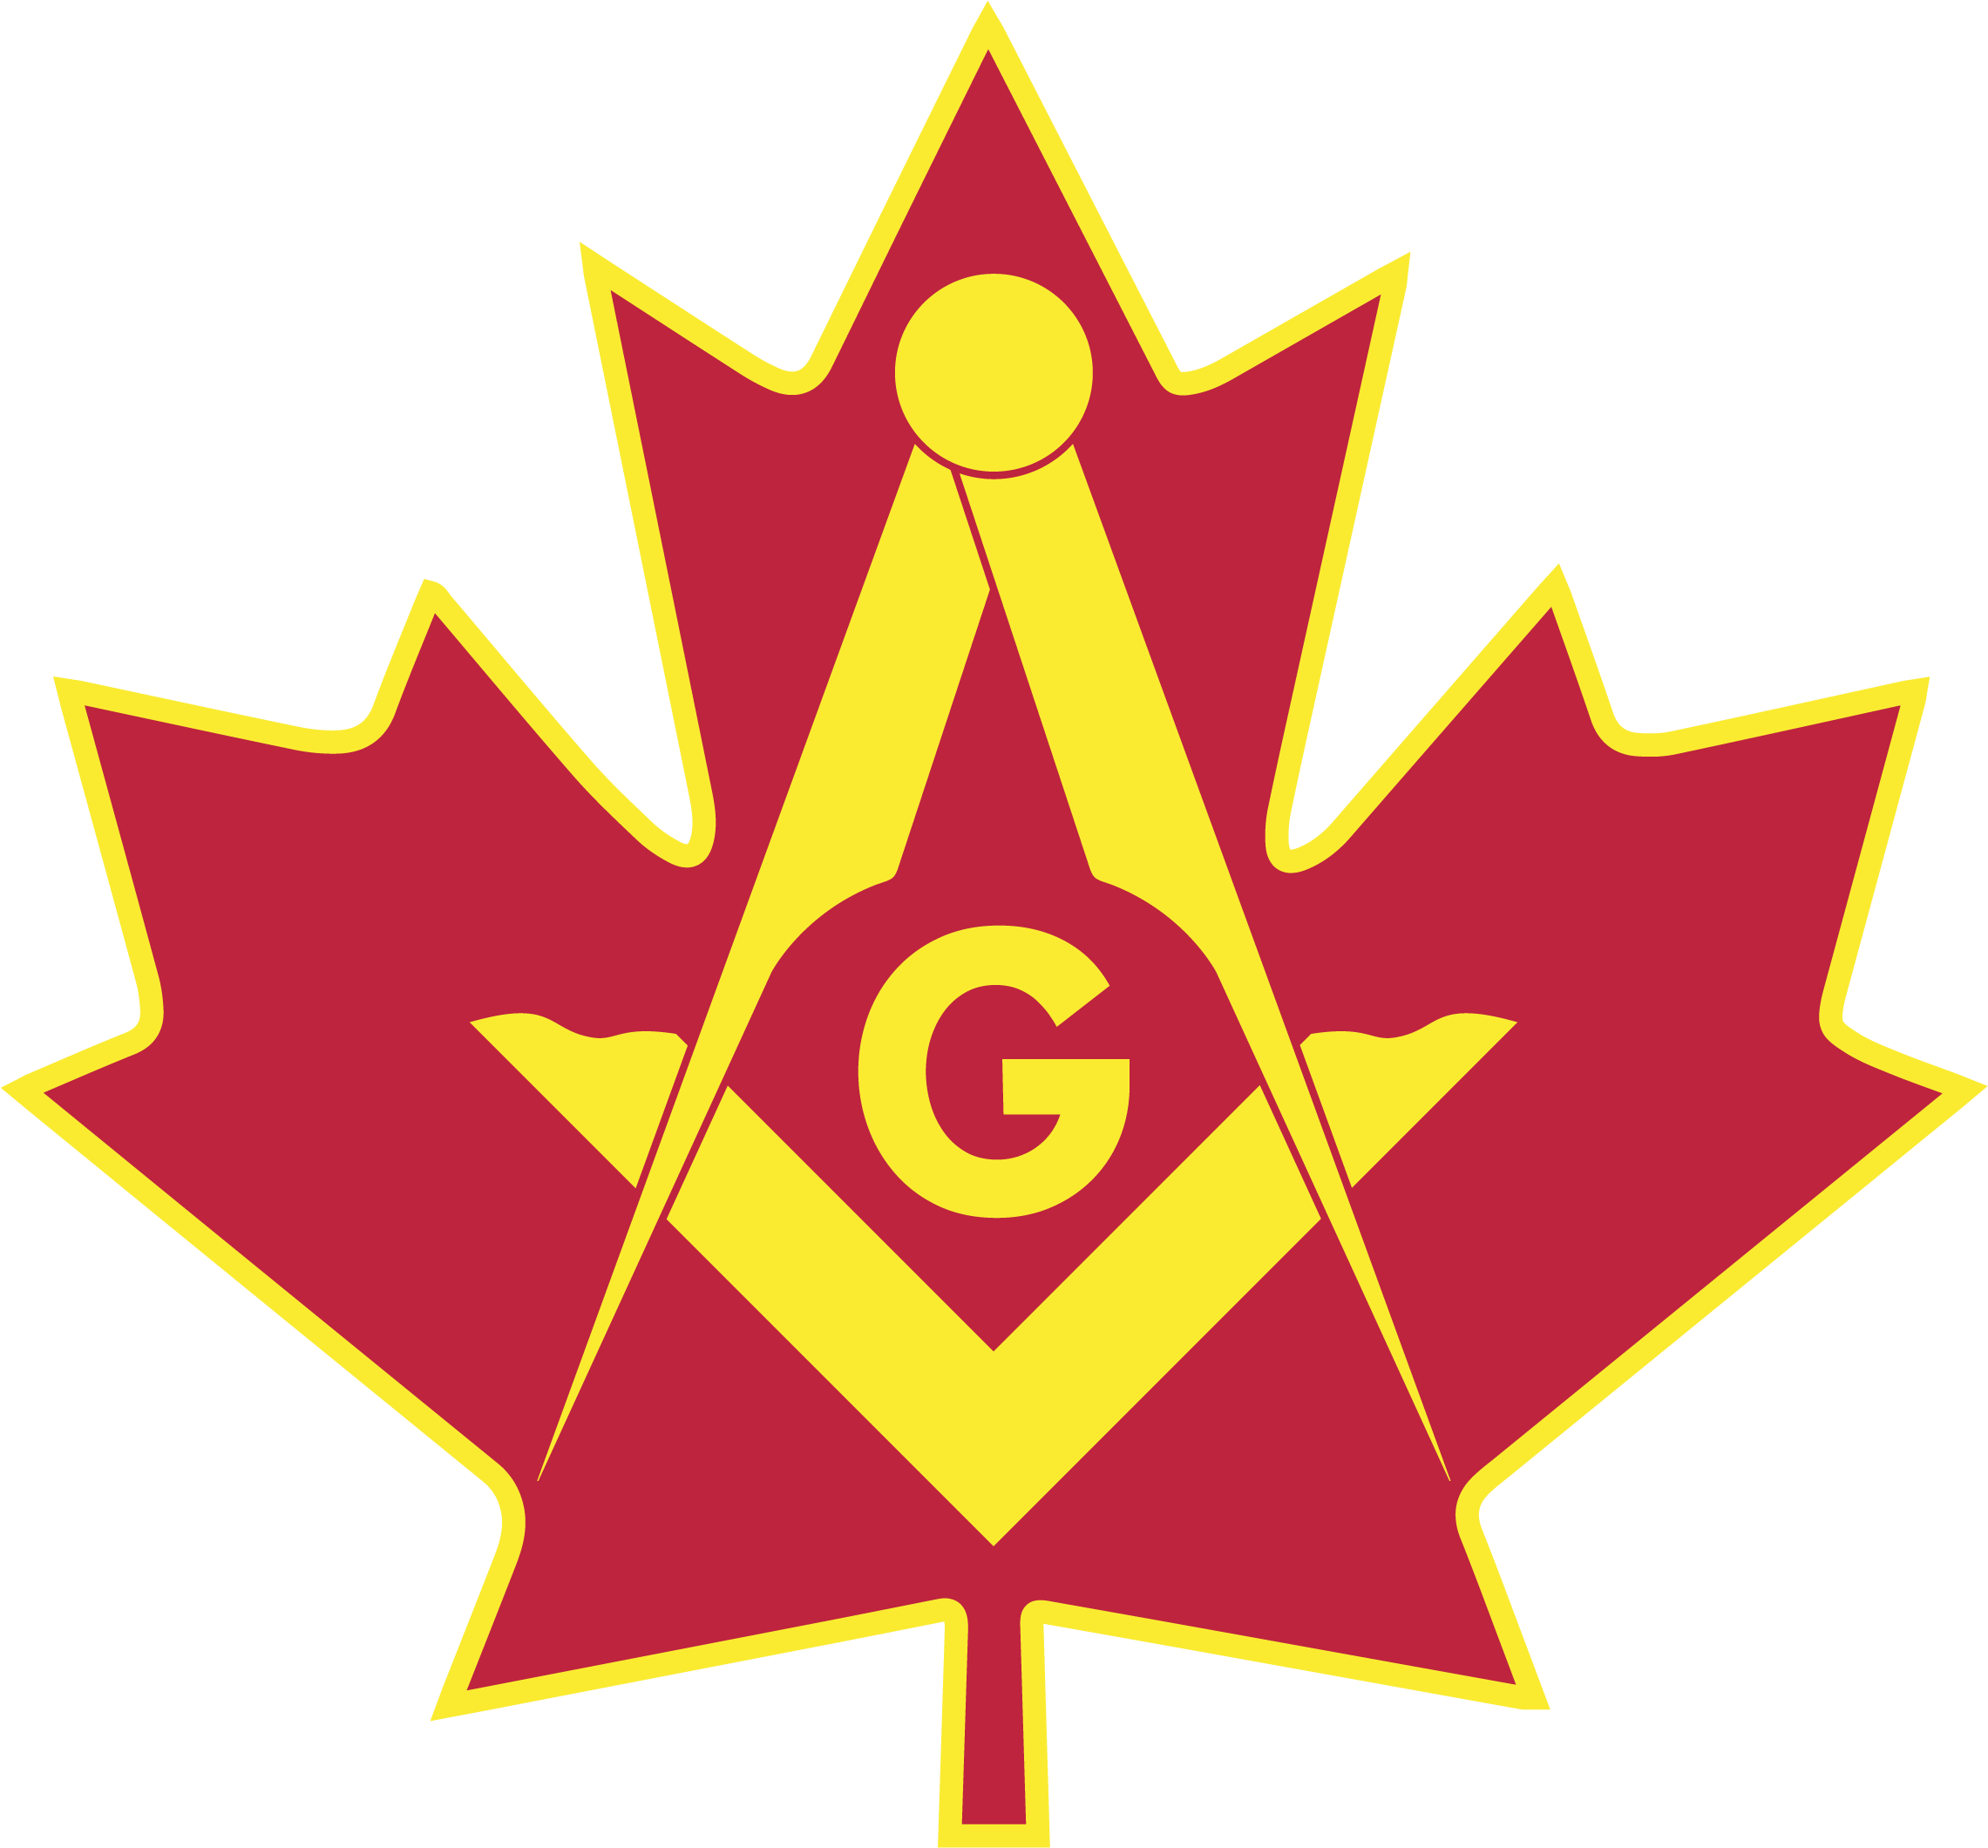 Ontario Masons - Maple Leaf with Square & Compass